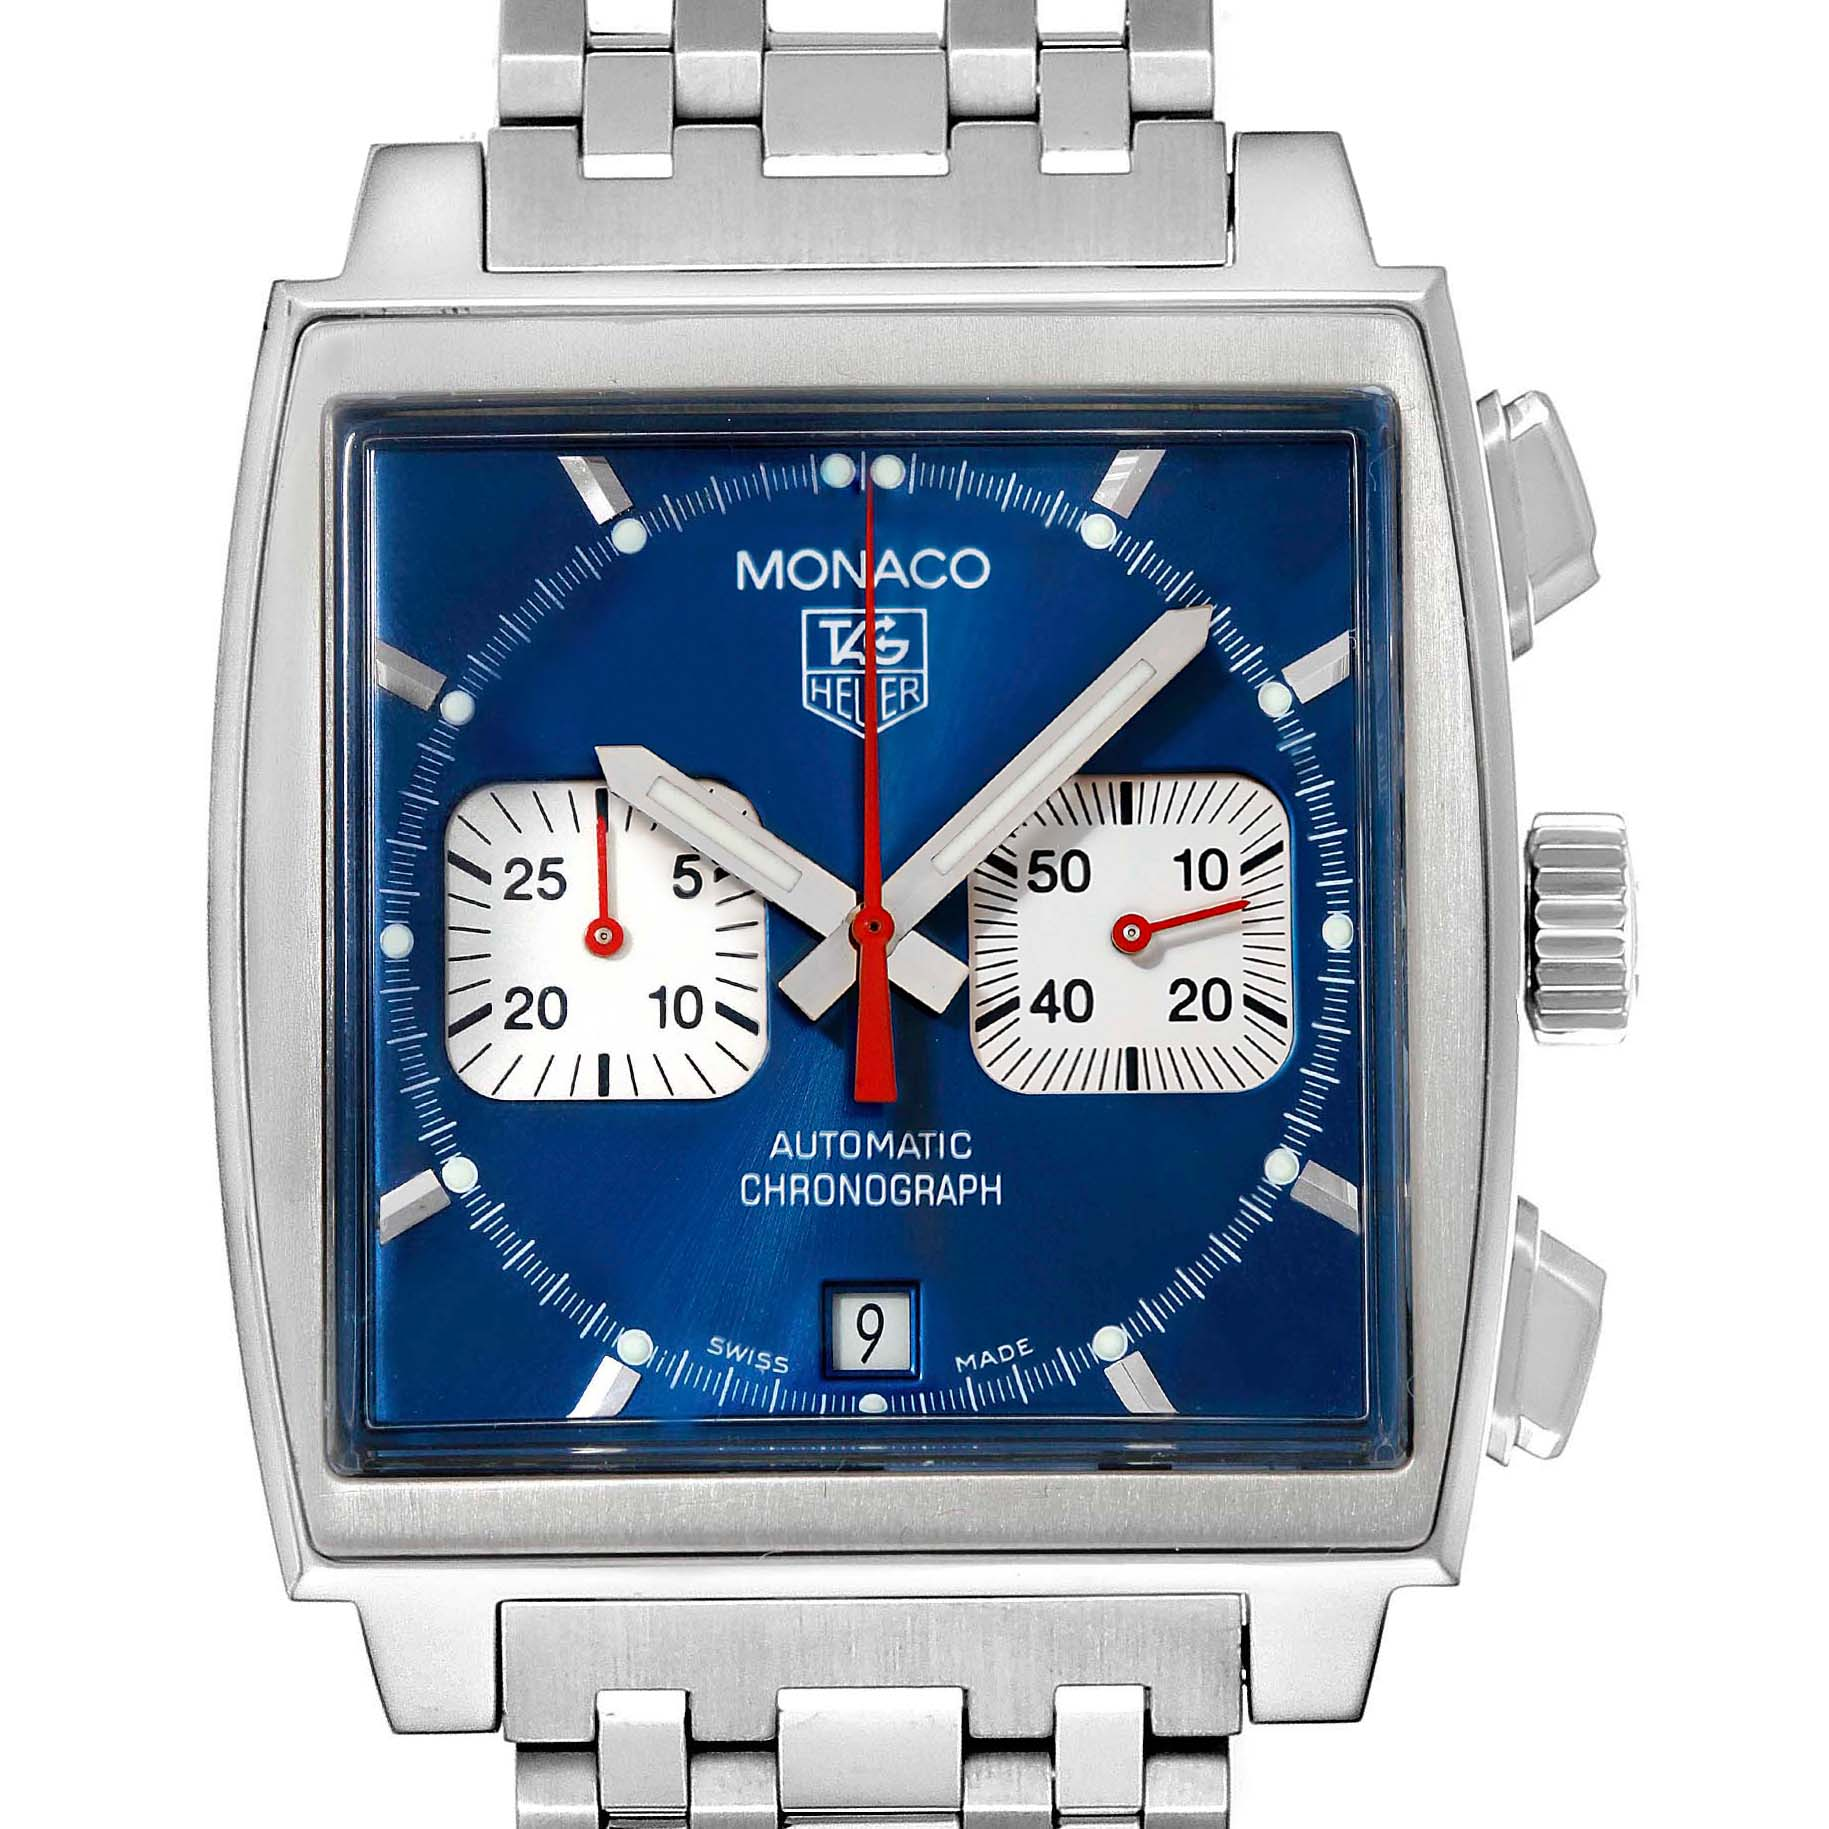 Tag Heuer Monaco Automatic Chronograph Mens Watch CW2113 SwissWatchExpo